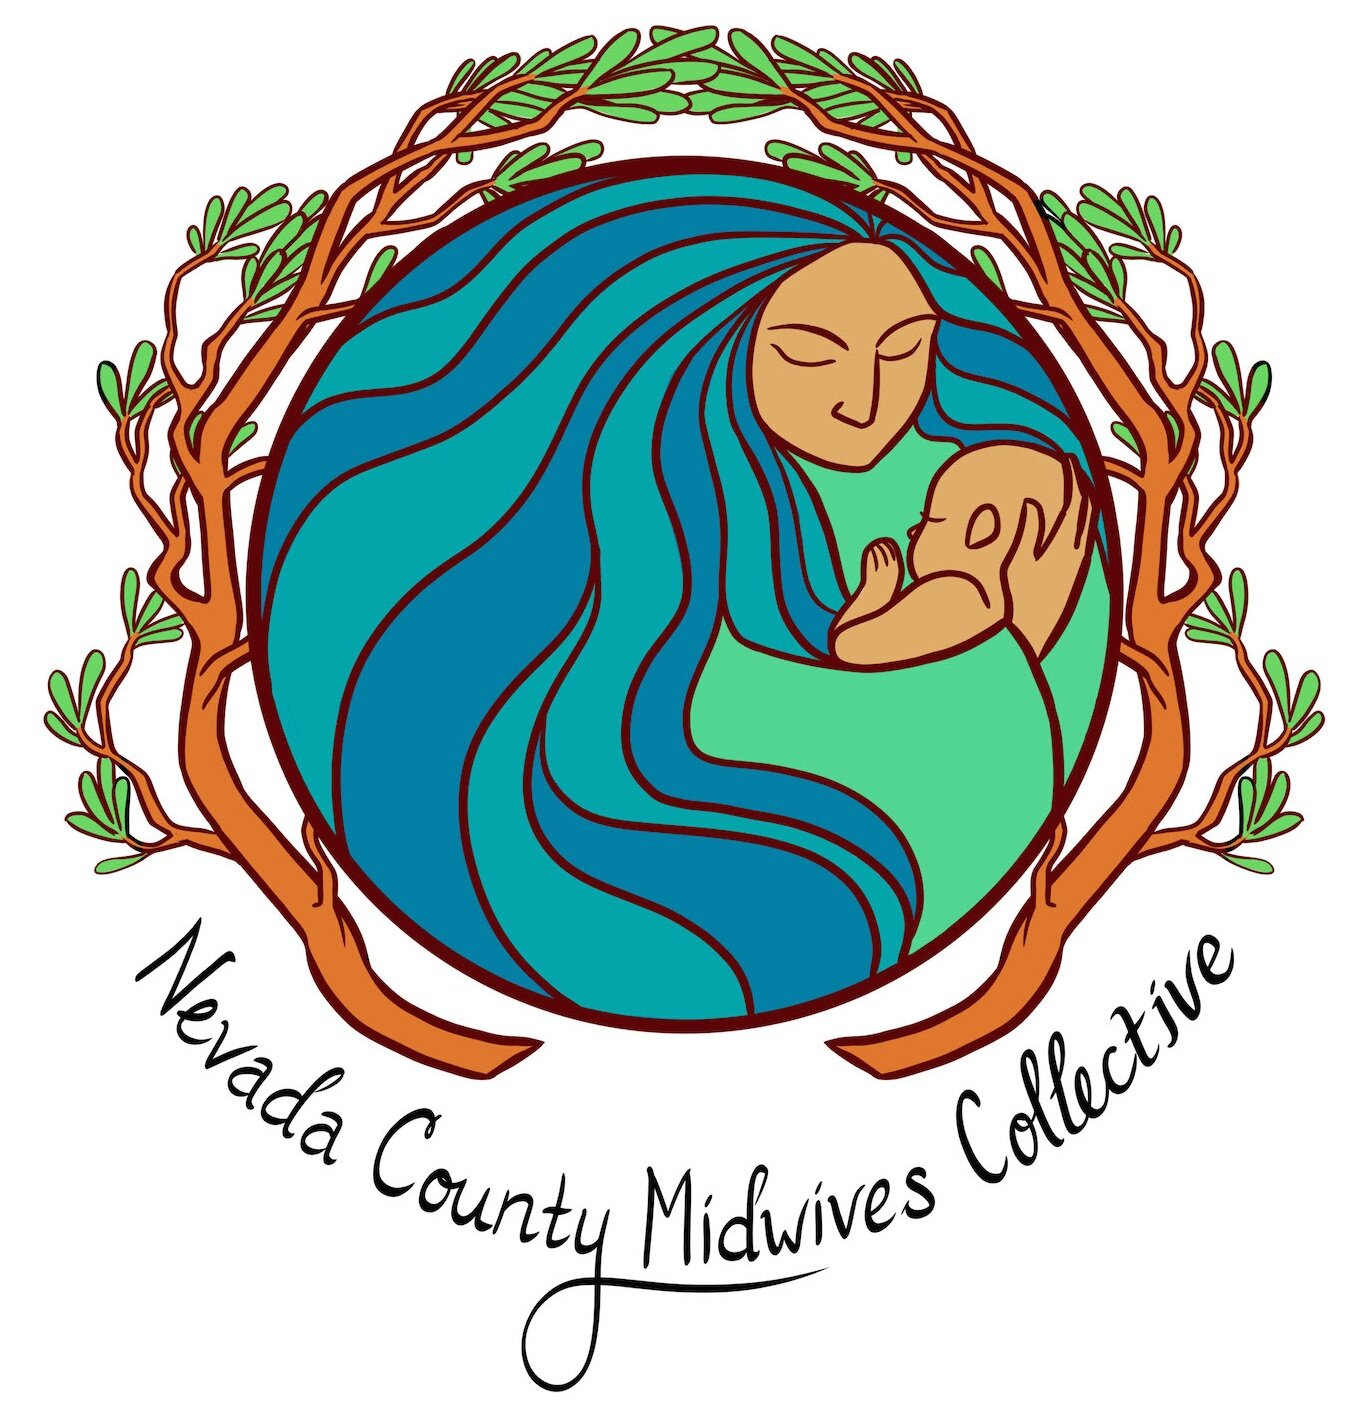 Nevada County Midwives Collective